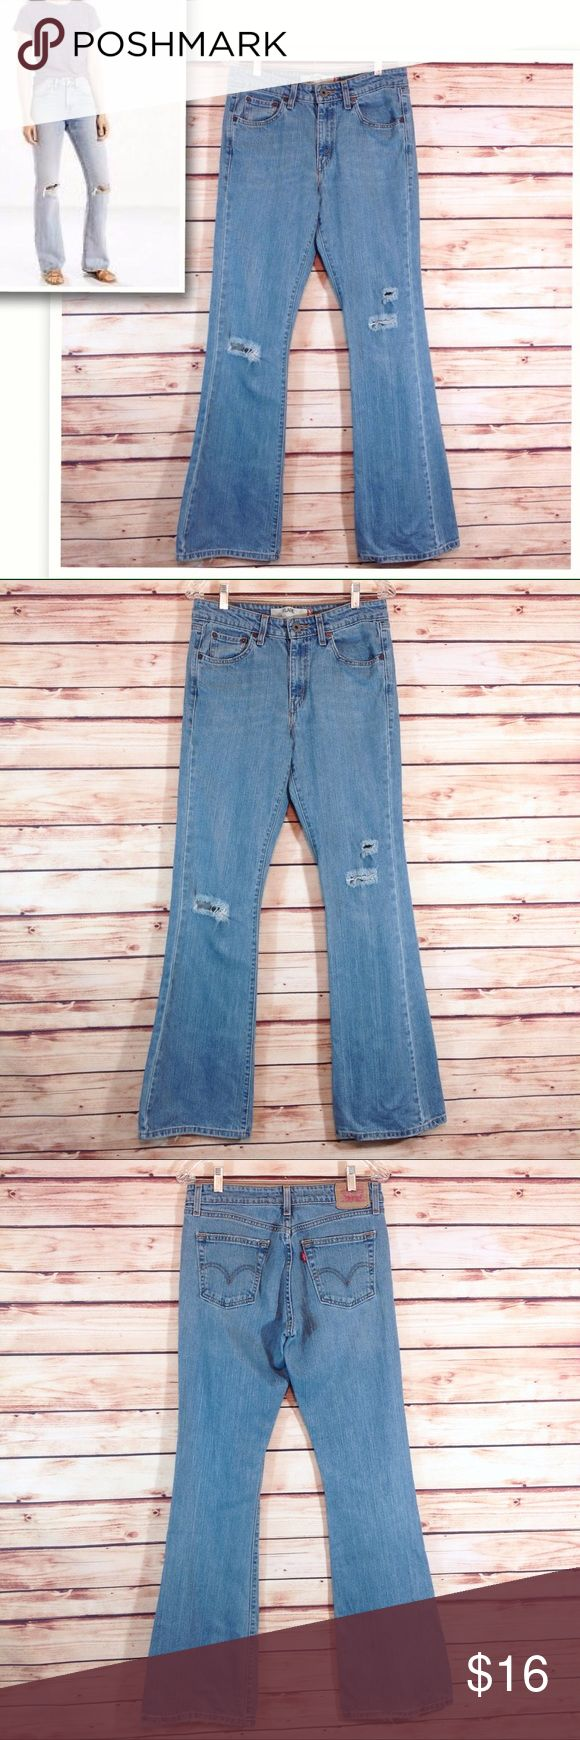 "Levi's 519 Distressed Flare Jean Sz 9 EUC Excellent condition! EUC. Levi's 519 distressed flare jean. Size 9 Long. Waist 15"" across flat. Inseam 33"".   🔹Please ask all your questions before you purchase!  🔹Sorry, no trades or holds. 🔹Bundle for your best prices! Levi's Jeans Flare & Wide Leg"